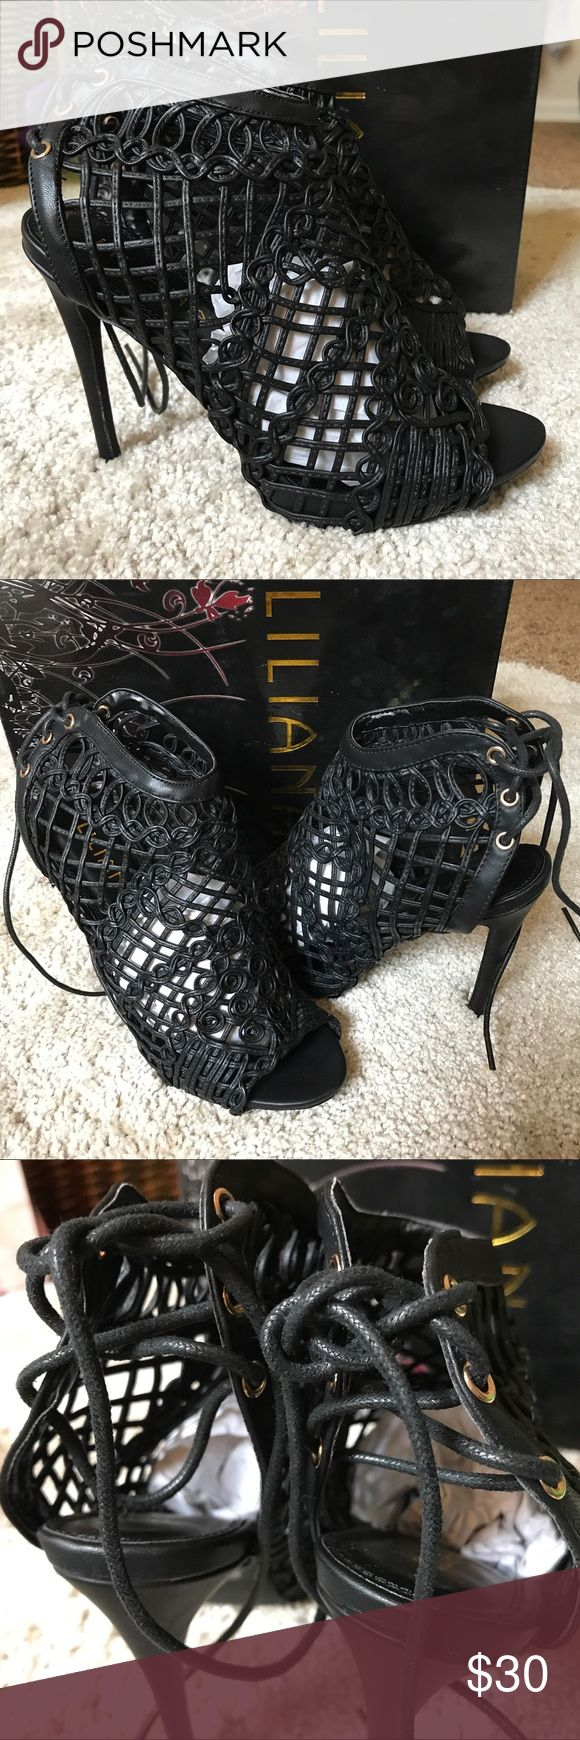 Windsor Black Pattern Tie Up Back Heels 7.5 NEW Beautiful black heels. Size 7.5. Comes with packaging and box. What you see is what you get. Windsor Shoes Heels